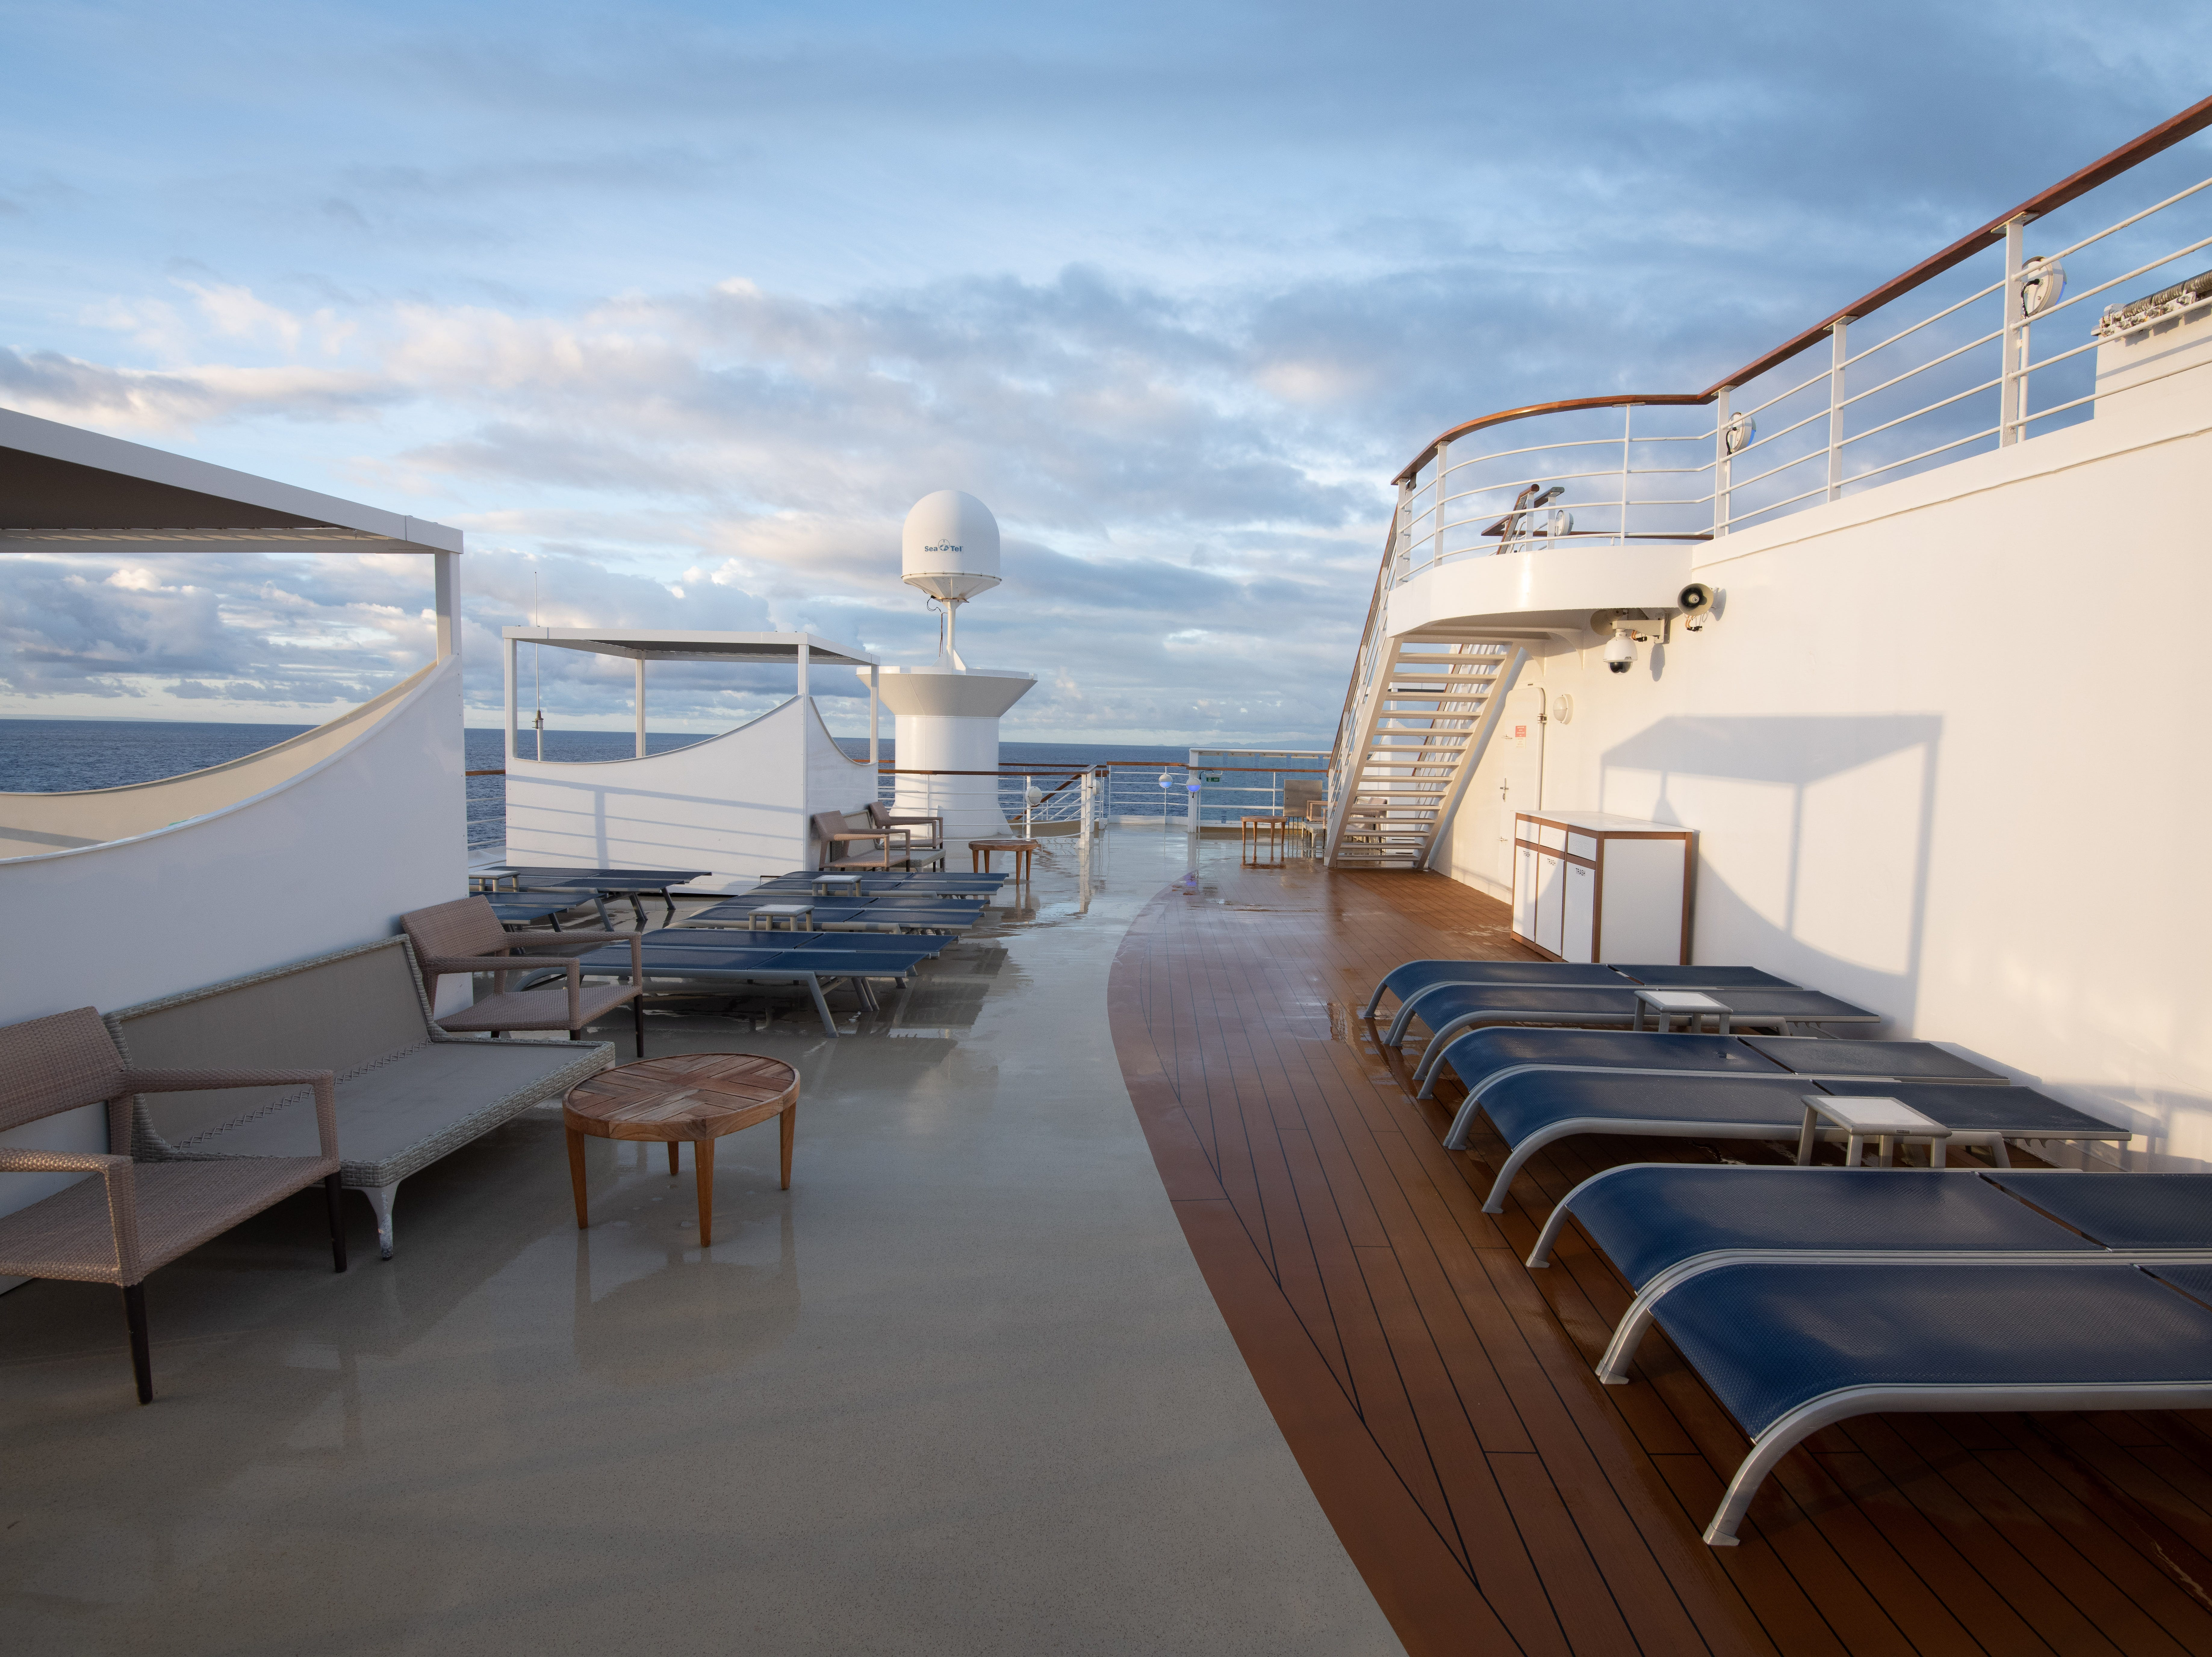 In addition to sun lounging areas around its main pool on Deck 11, Pride of America has extensive lounging spaces toward the front of the vessel on Deck 14.